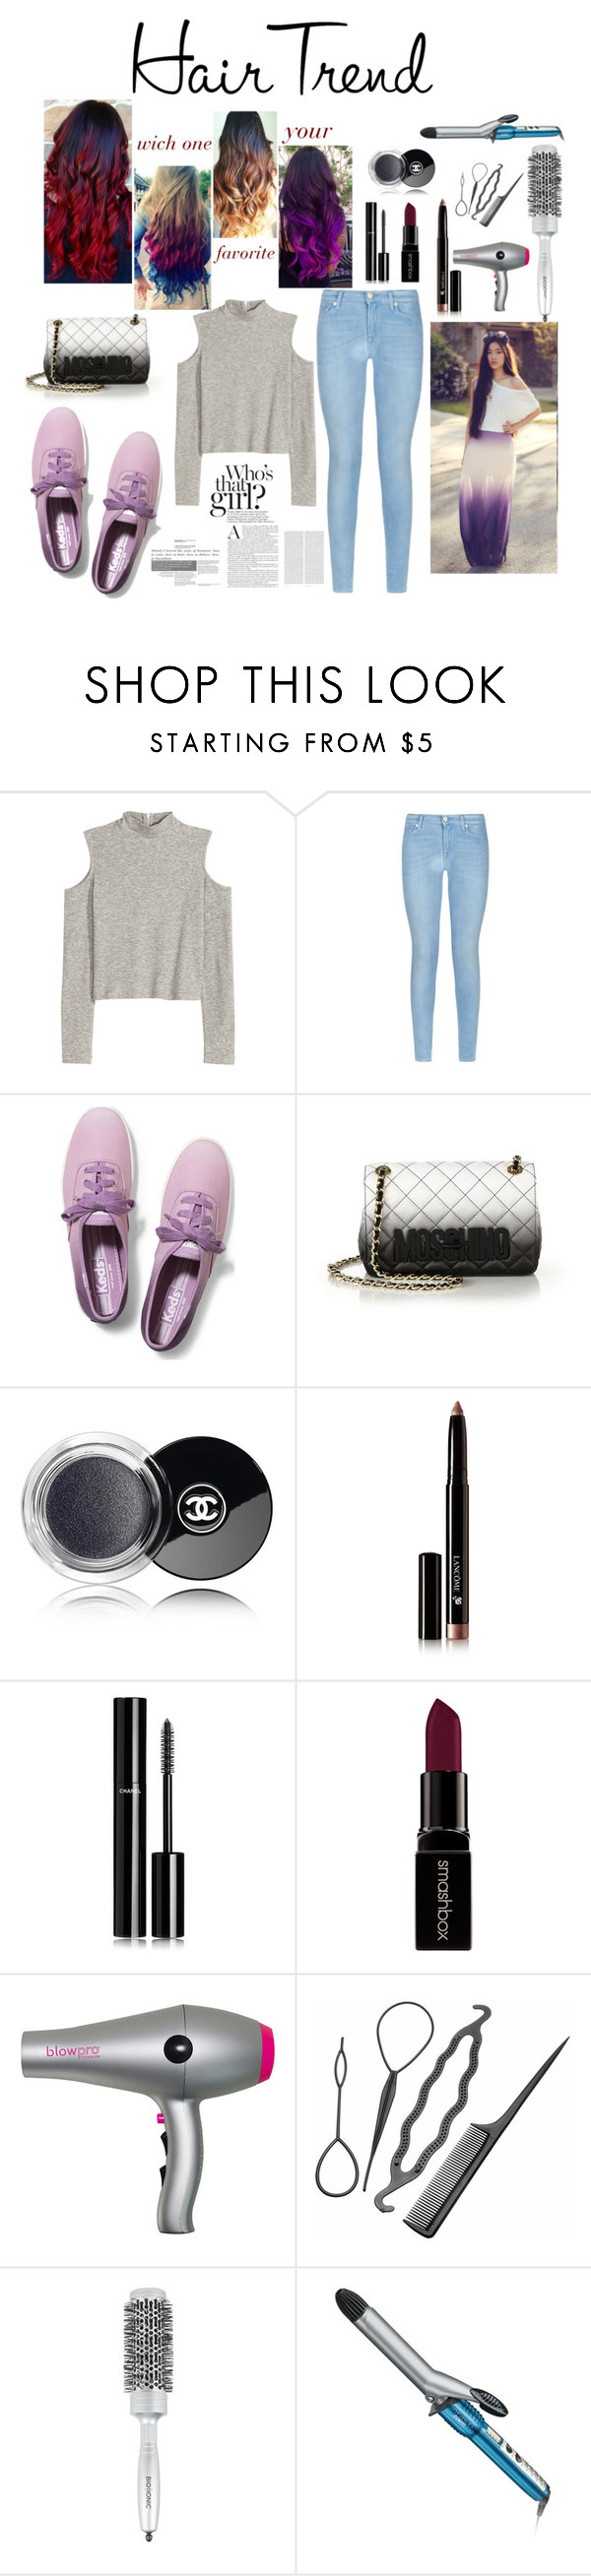 """ombre style"" by rputriwidyastri ❤ liked on Polyvore featuring beauty, 7 For All Mankind, Keds, Moschino, Chanel, Lancôme, Smashbox, blow, Bio Ionic and Conair"